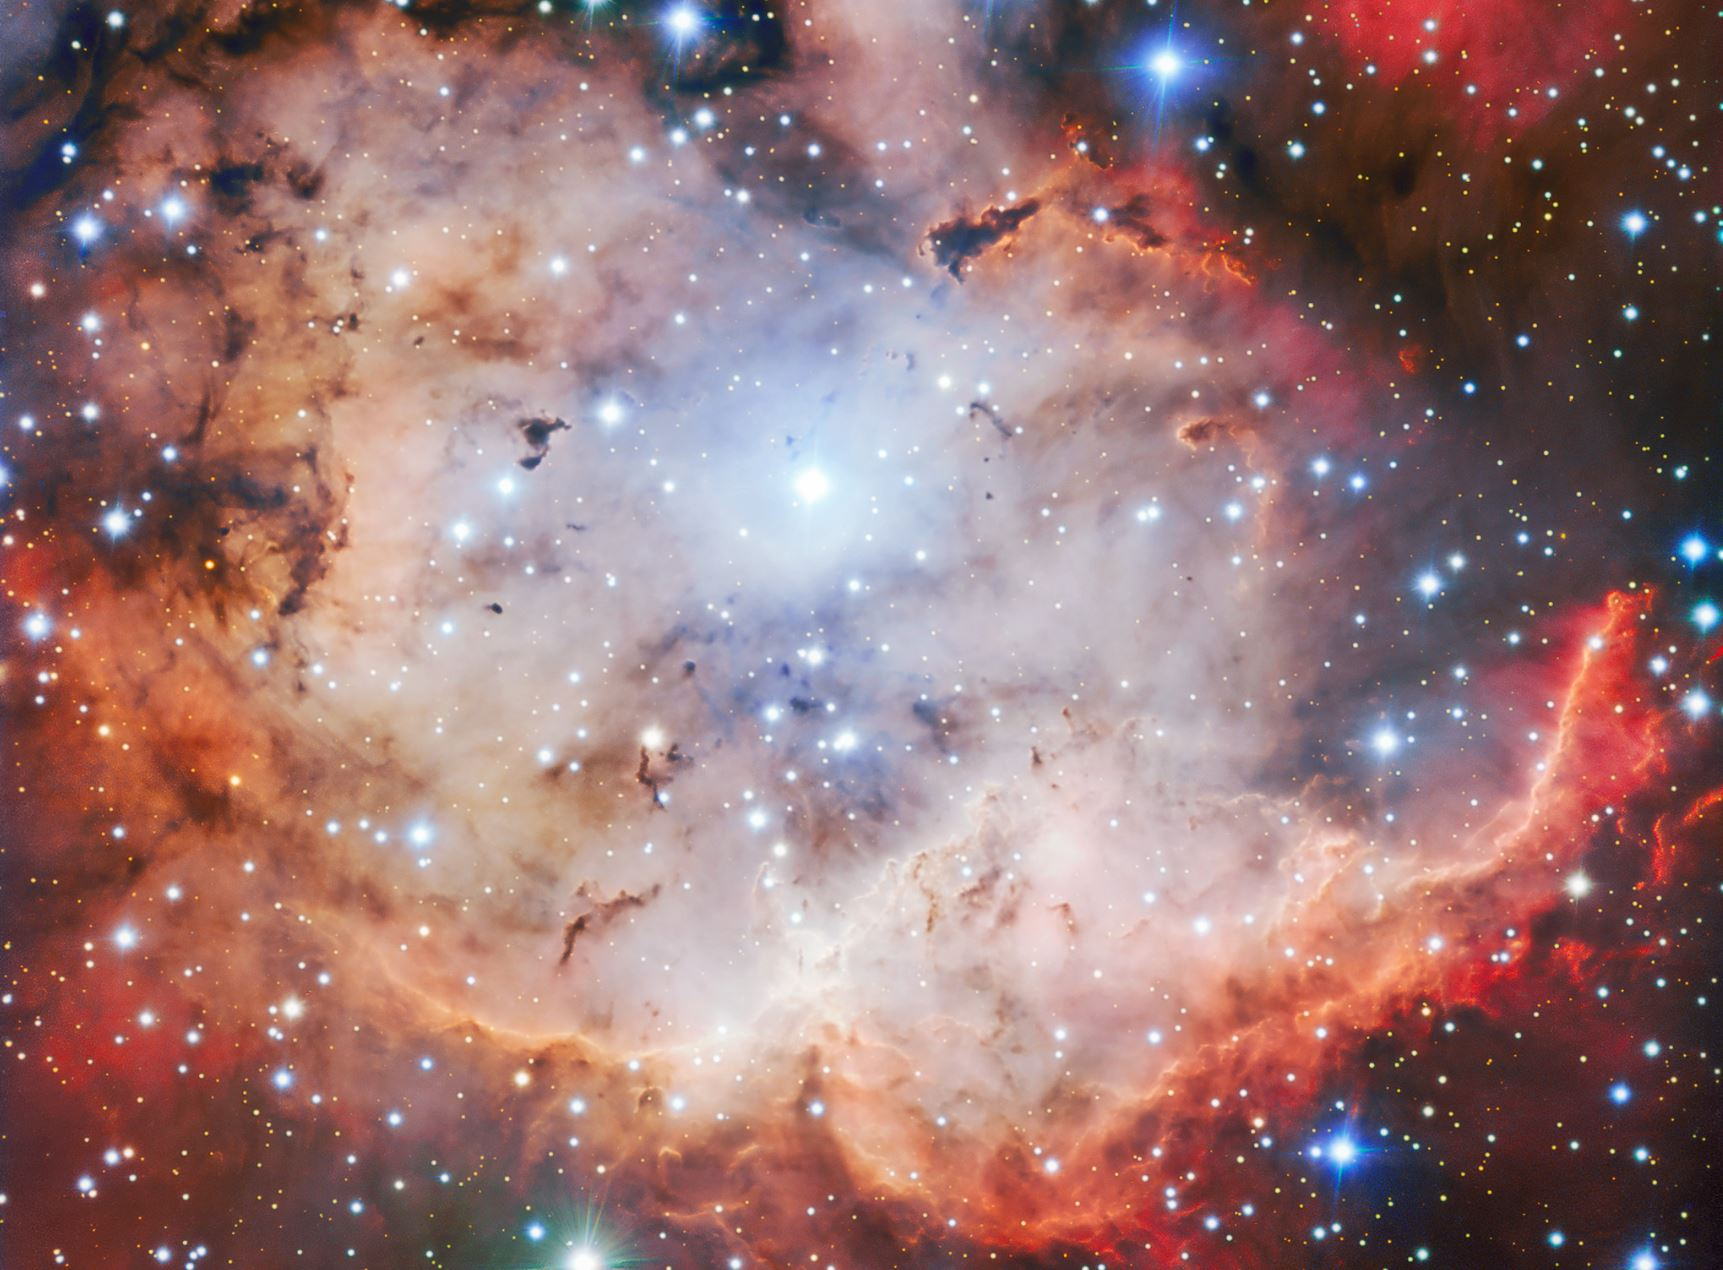 This vivid picture of an active star forming region — NGC 2467, otherwise known as the Skull and Crossbones nebula — is as sinister as it is beautiful. This image of dust, gas and bright young stars, gravitationally bound into the form of a grinning skull, was captured with the  FORS  instrument on  ESO 's  Very Large Telescope  (VLT). Whilst ESO's telescopes are usually used for the collection of science data, their immense resolving power makes them ideal for capturing images such as this — which are beautiful for their own sake. - Image Credit: ESO